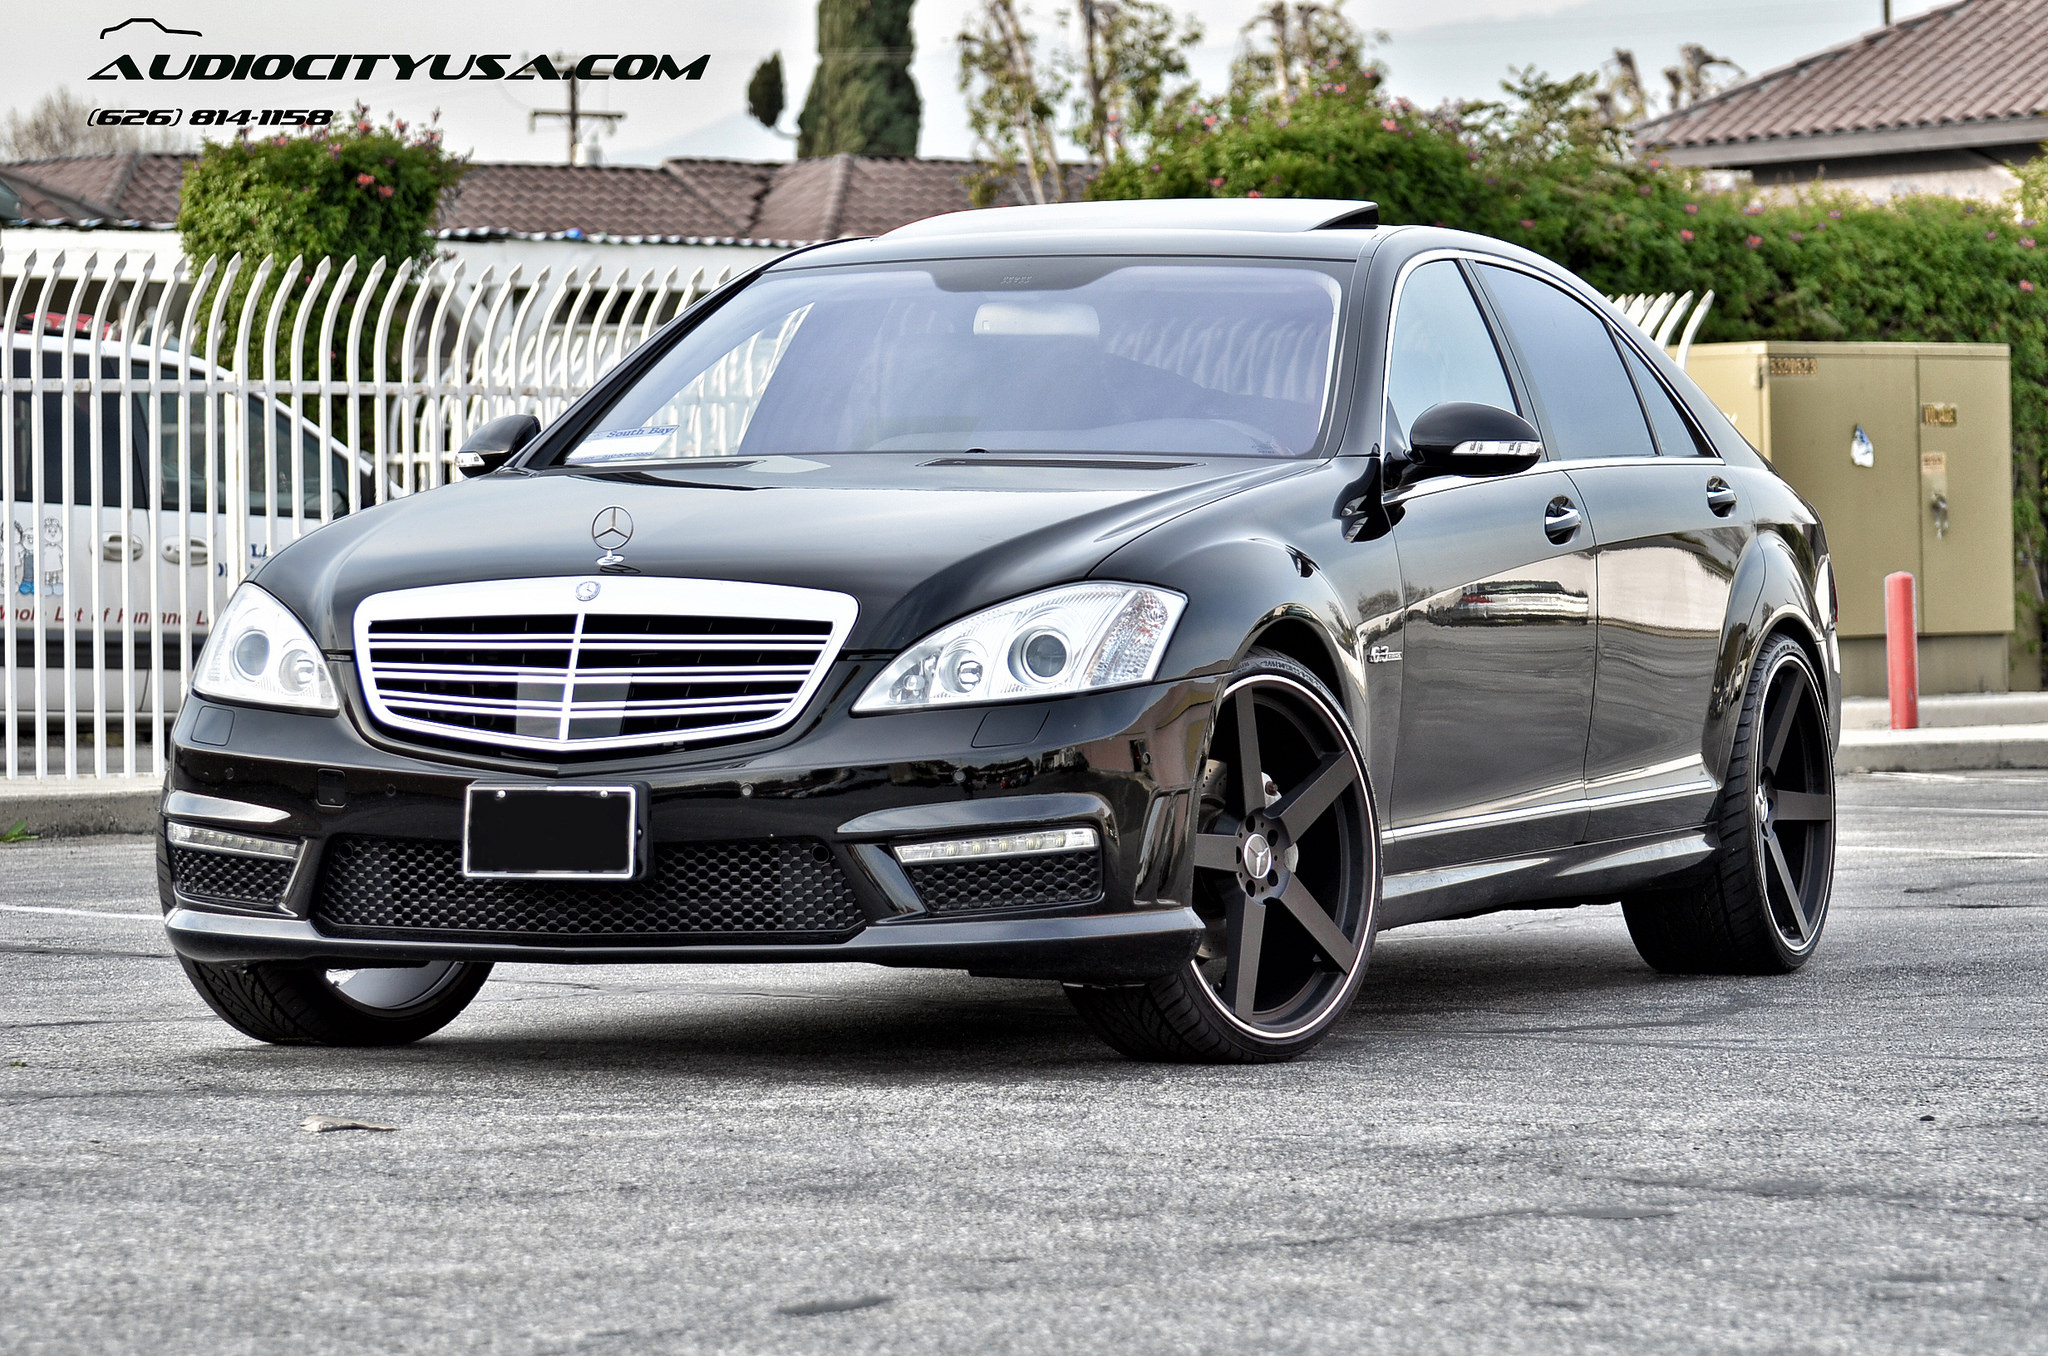 Koko Kuture Sardinia-5 r22  Matte black on 2008 Mercedes Benz S 63 AMG